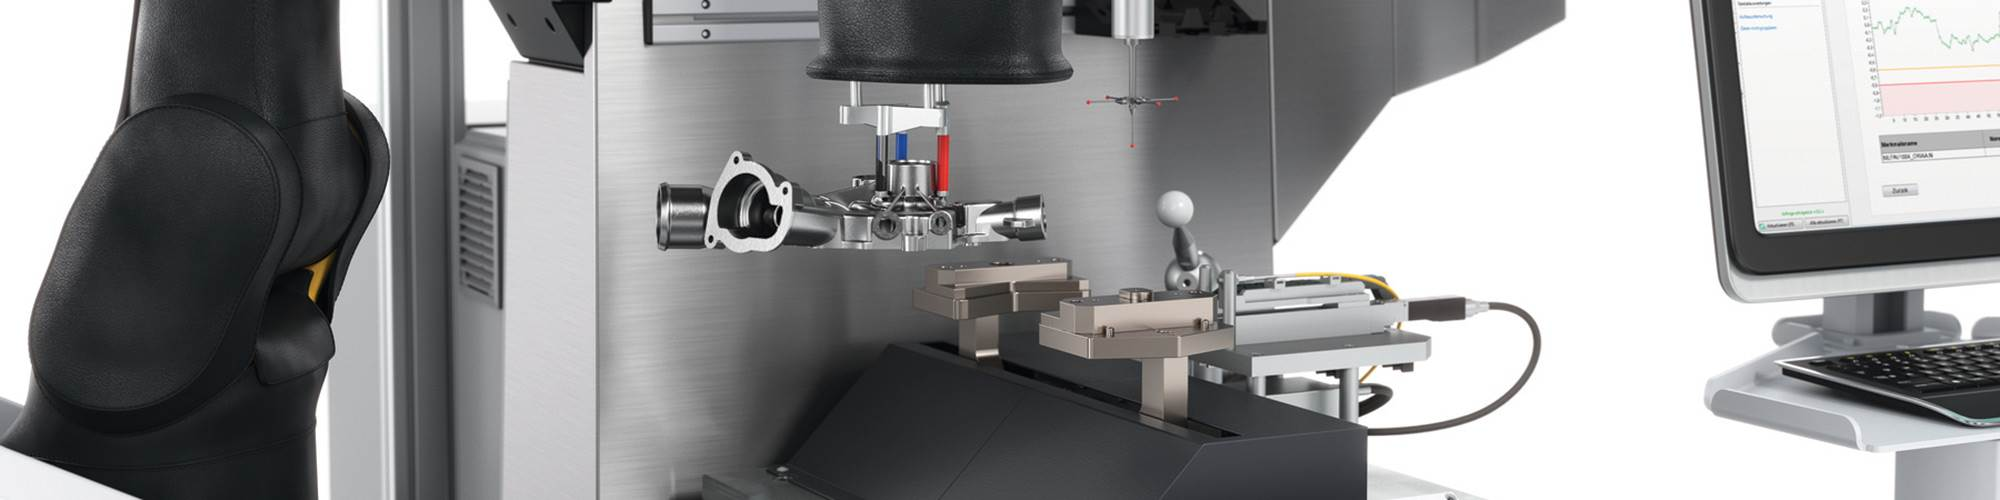 Shuttle tables, robots, and dedicated fixtures all can play roles in automating inspection equipment.